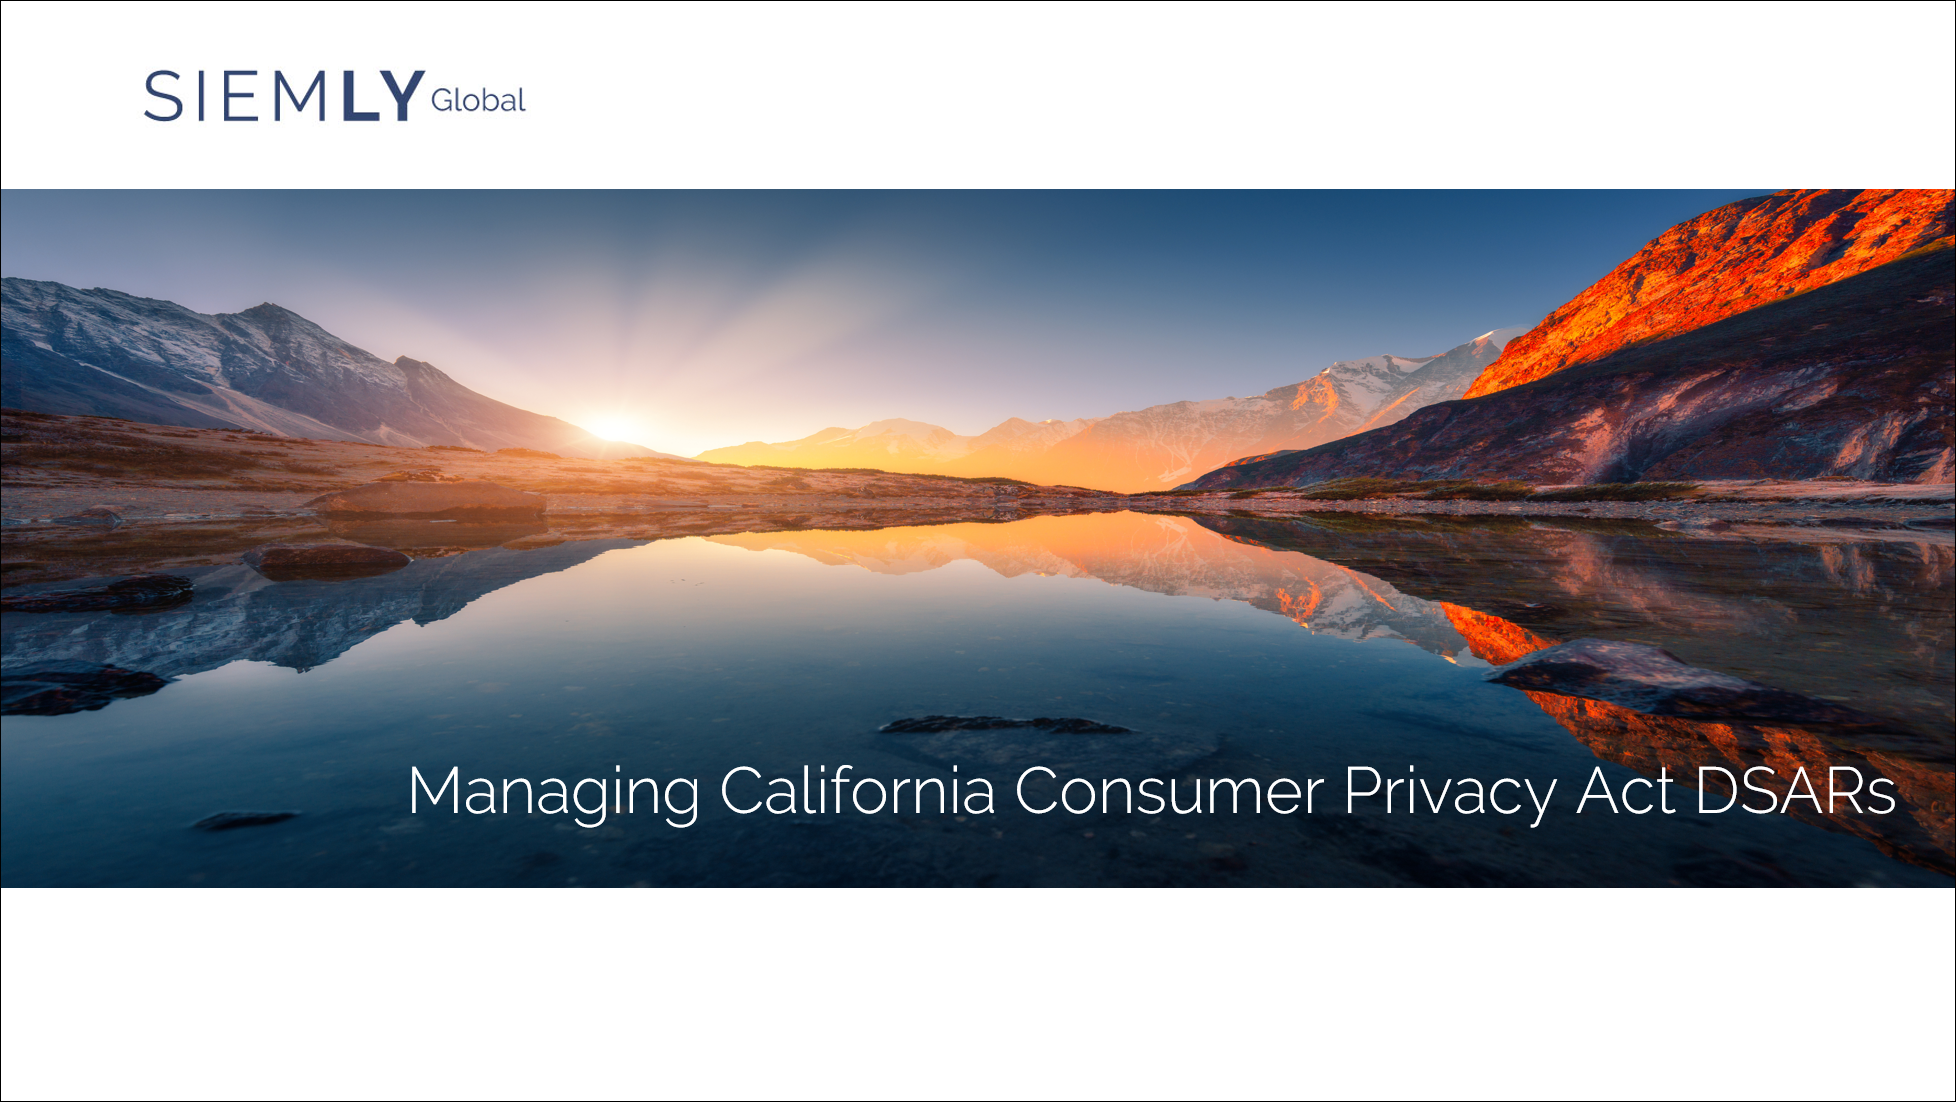 Managing California Consumer Privacy Act DSARs